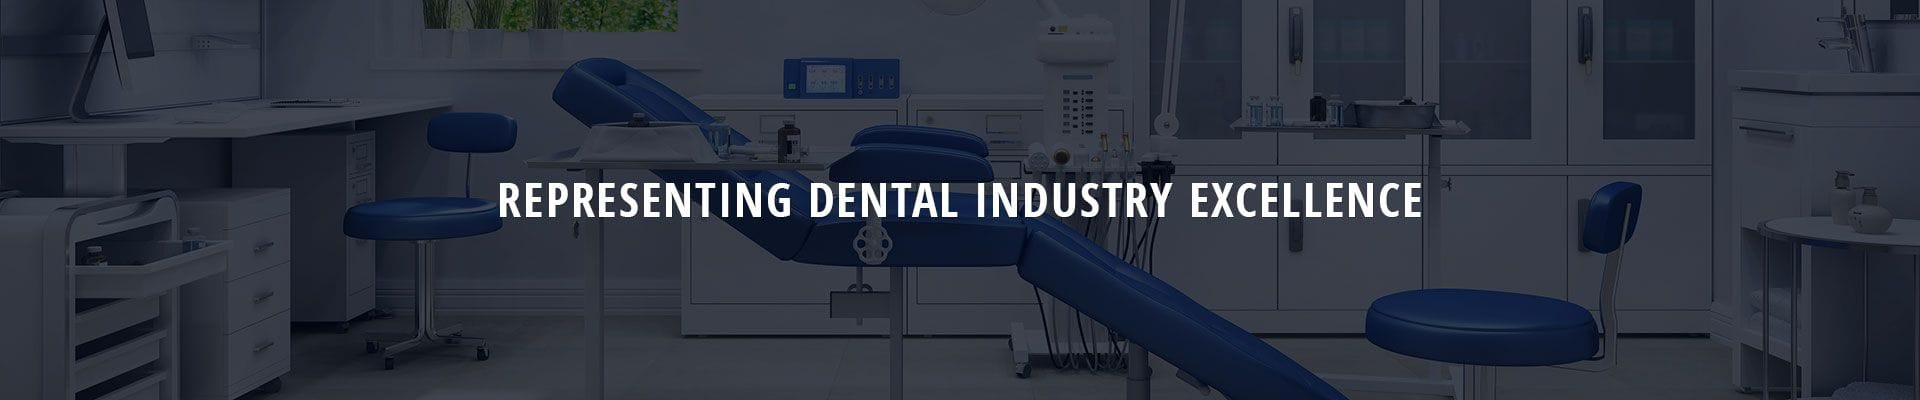 Standards Development | Australian Dental Industry Association